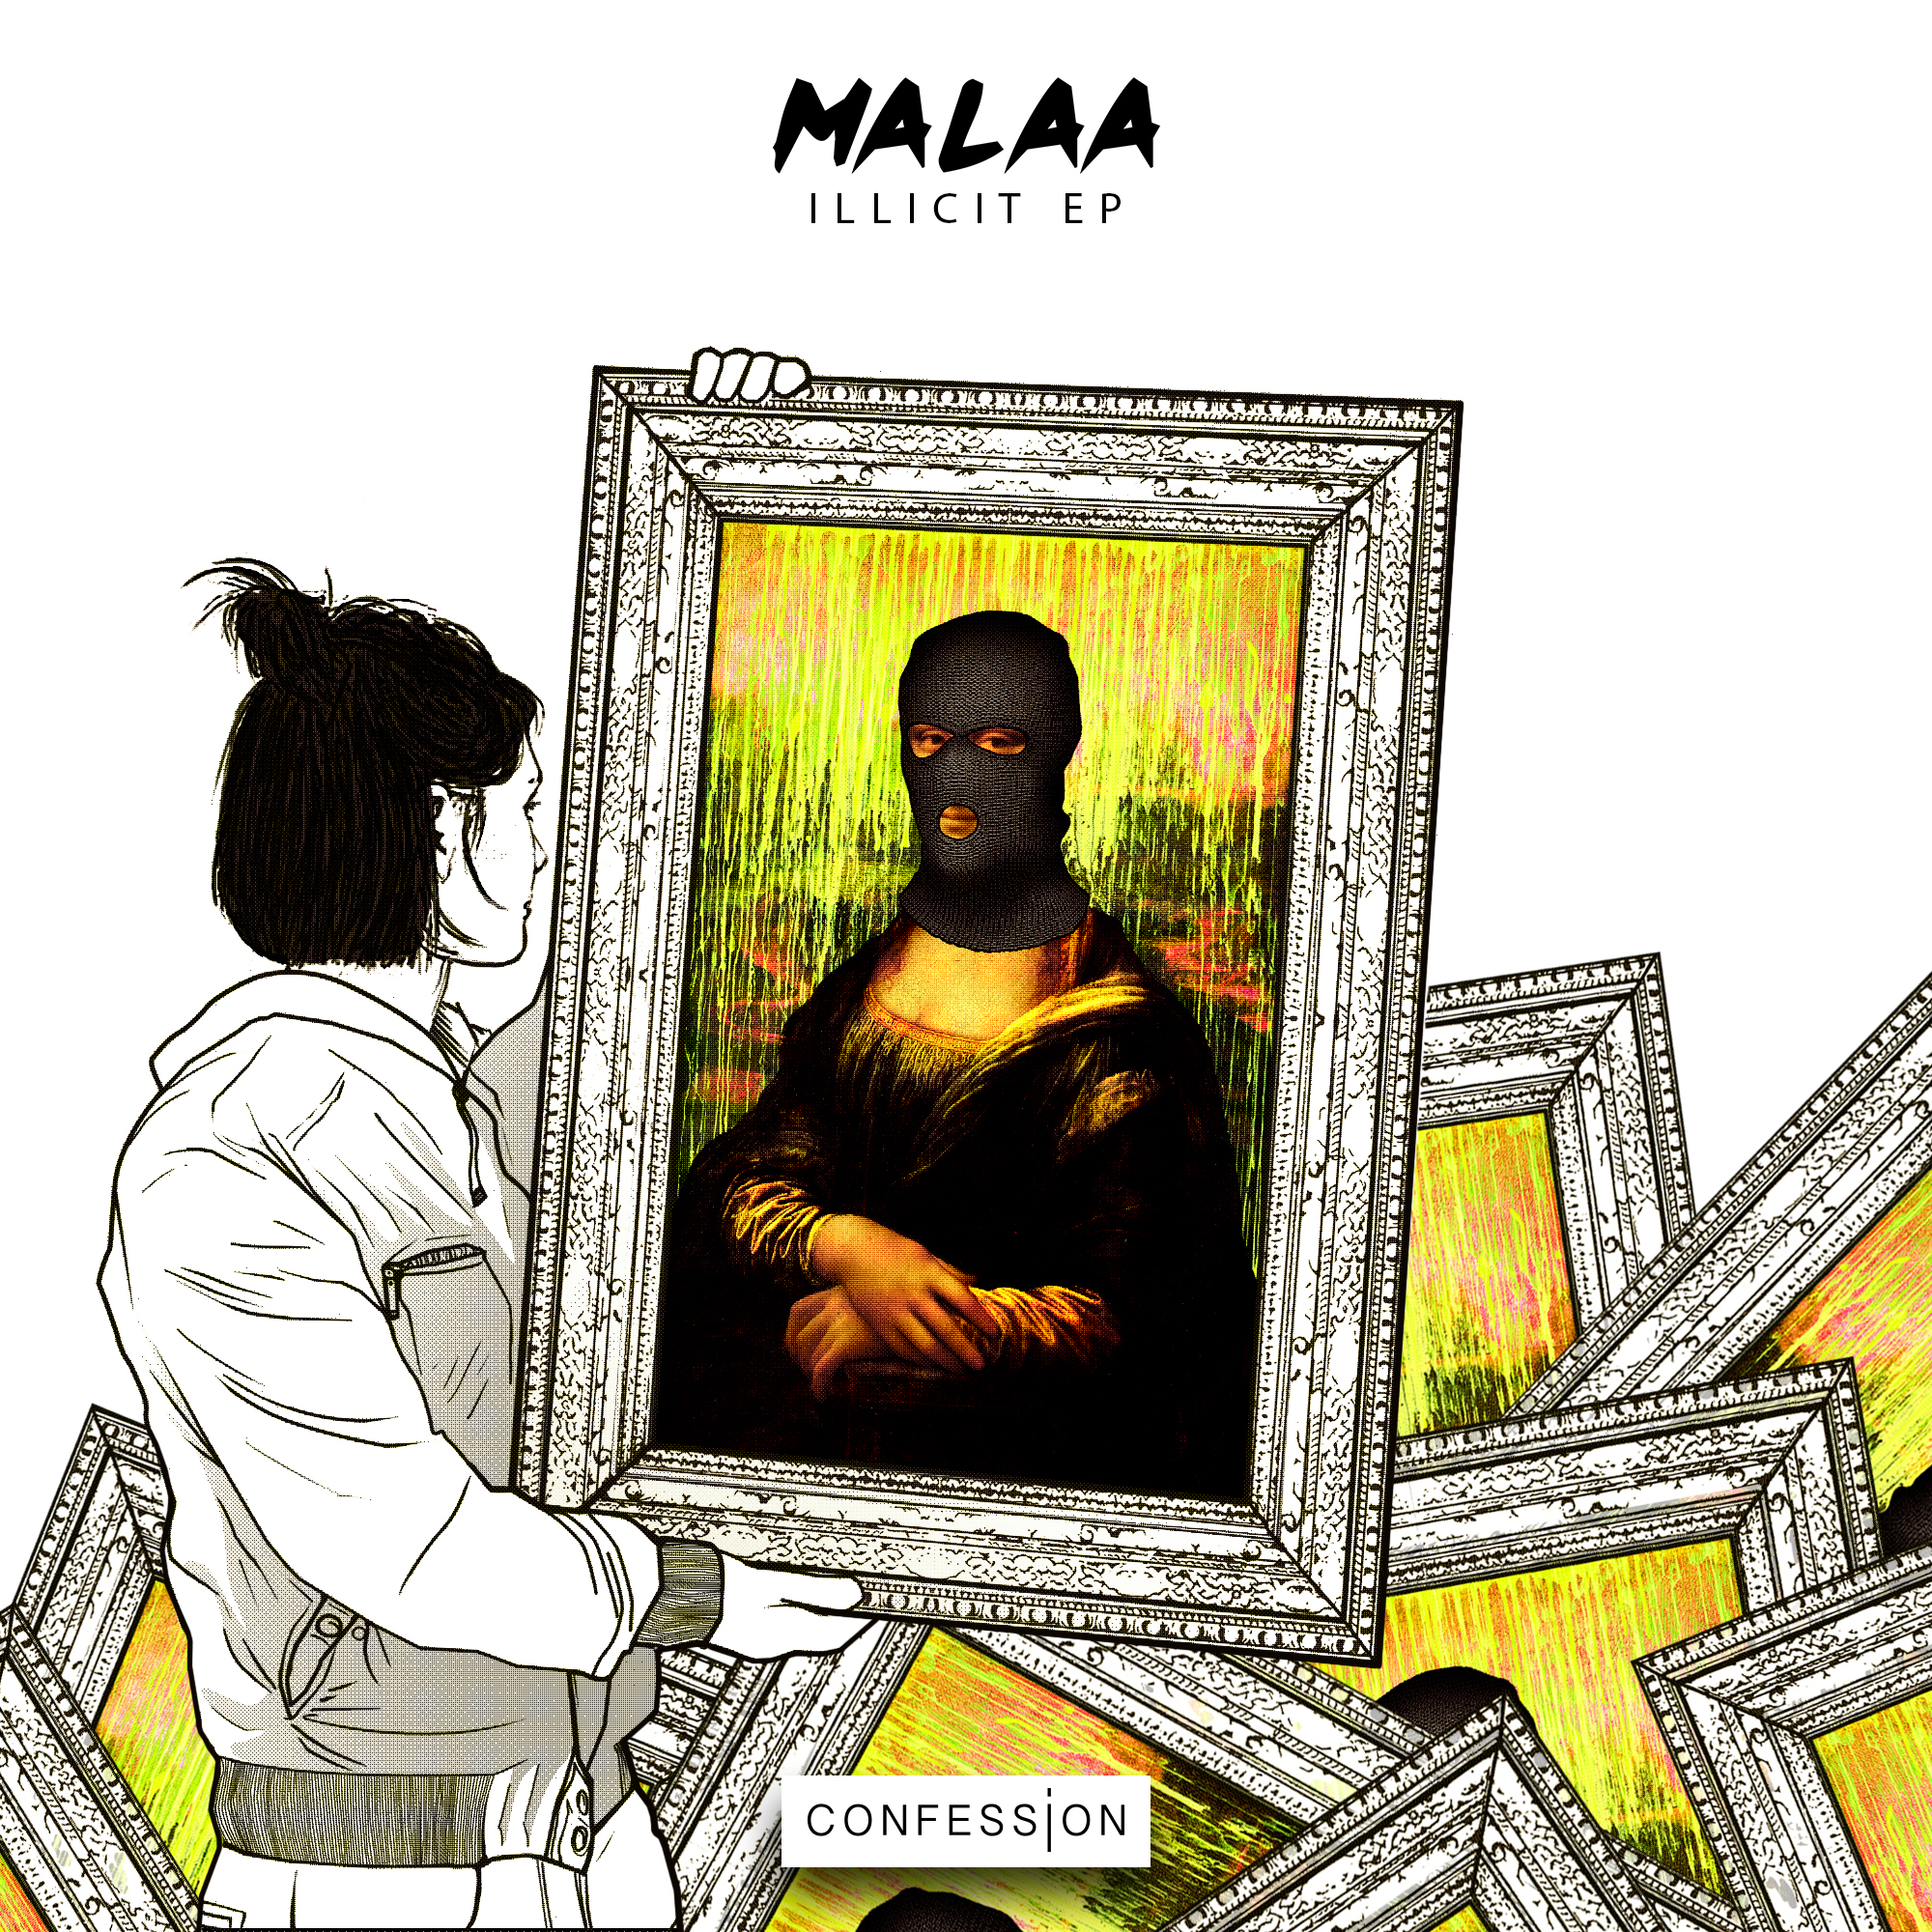 Malaa's Highly Anticipated Debut EP Has Arrived!